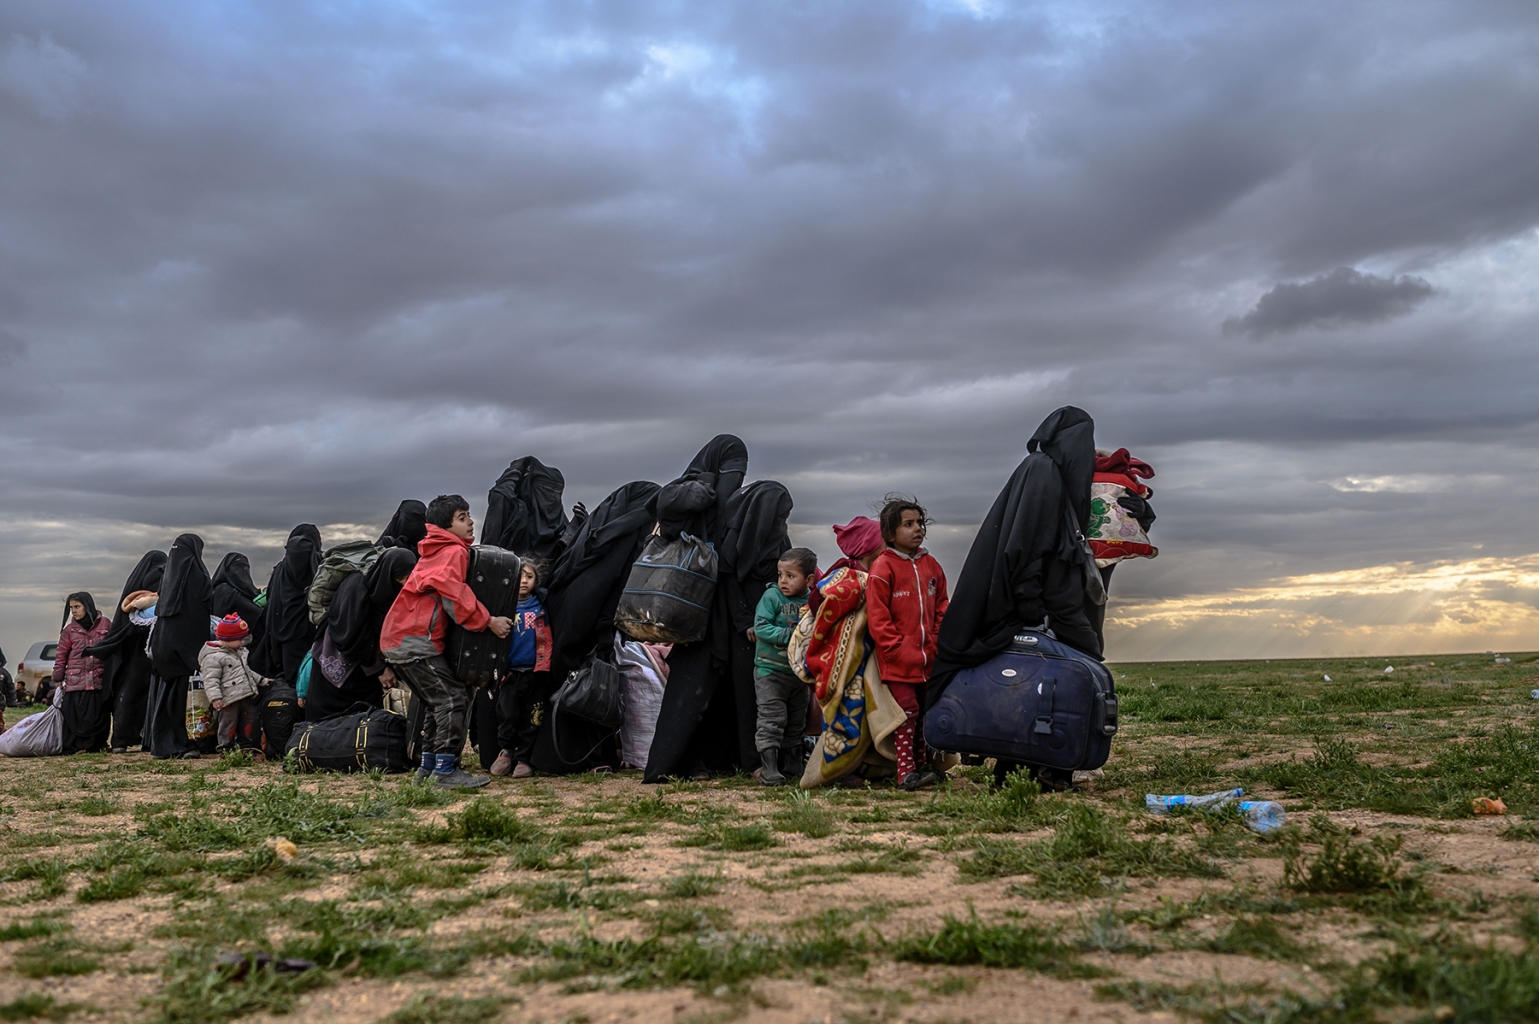 Women and children wait to be searched by members of the Syrian Democratic Forces after leaving Baghouz, Syria, on Feb. 27. BULENT KILIC/AFP/Getty Images